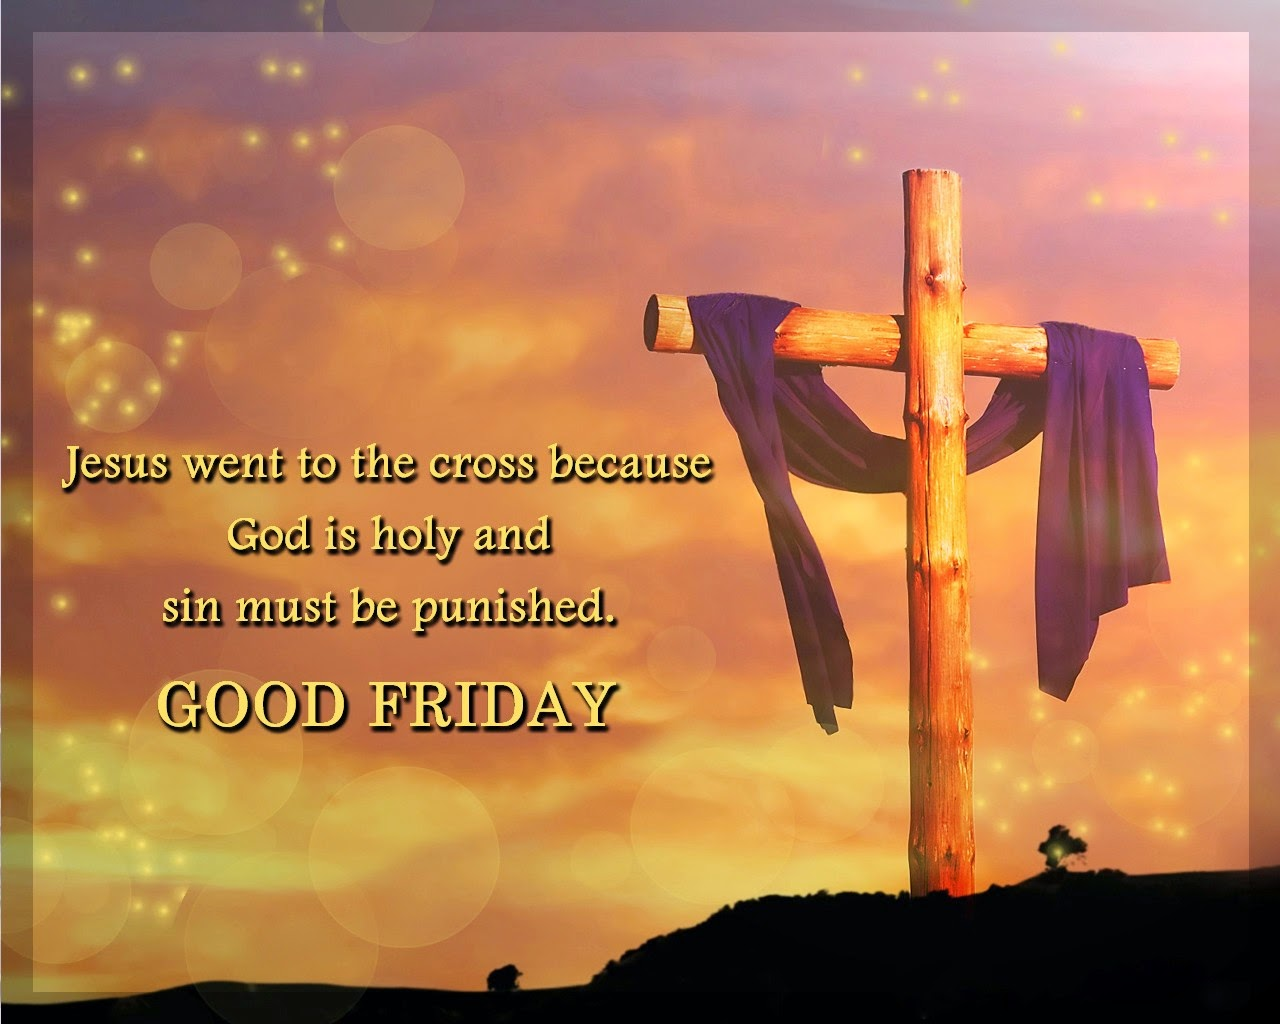 Good Friday Wishes, SMS, Greetings,Good Friday Wishes 2015, Good Friday Wishes, SMS, Greetings of all the year. Good Friday Wishes, SMS, Greetings and quotes.